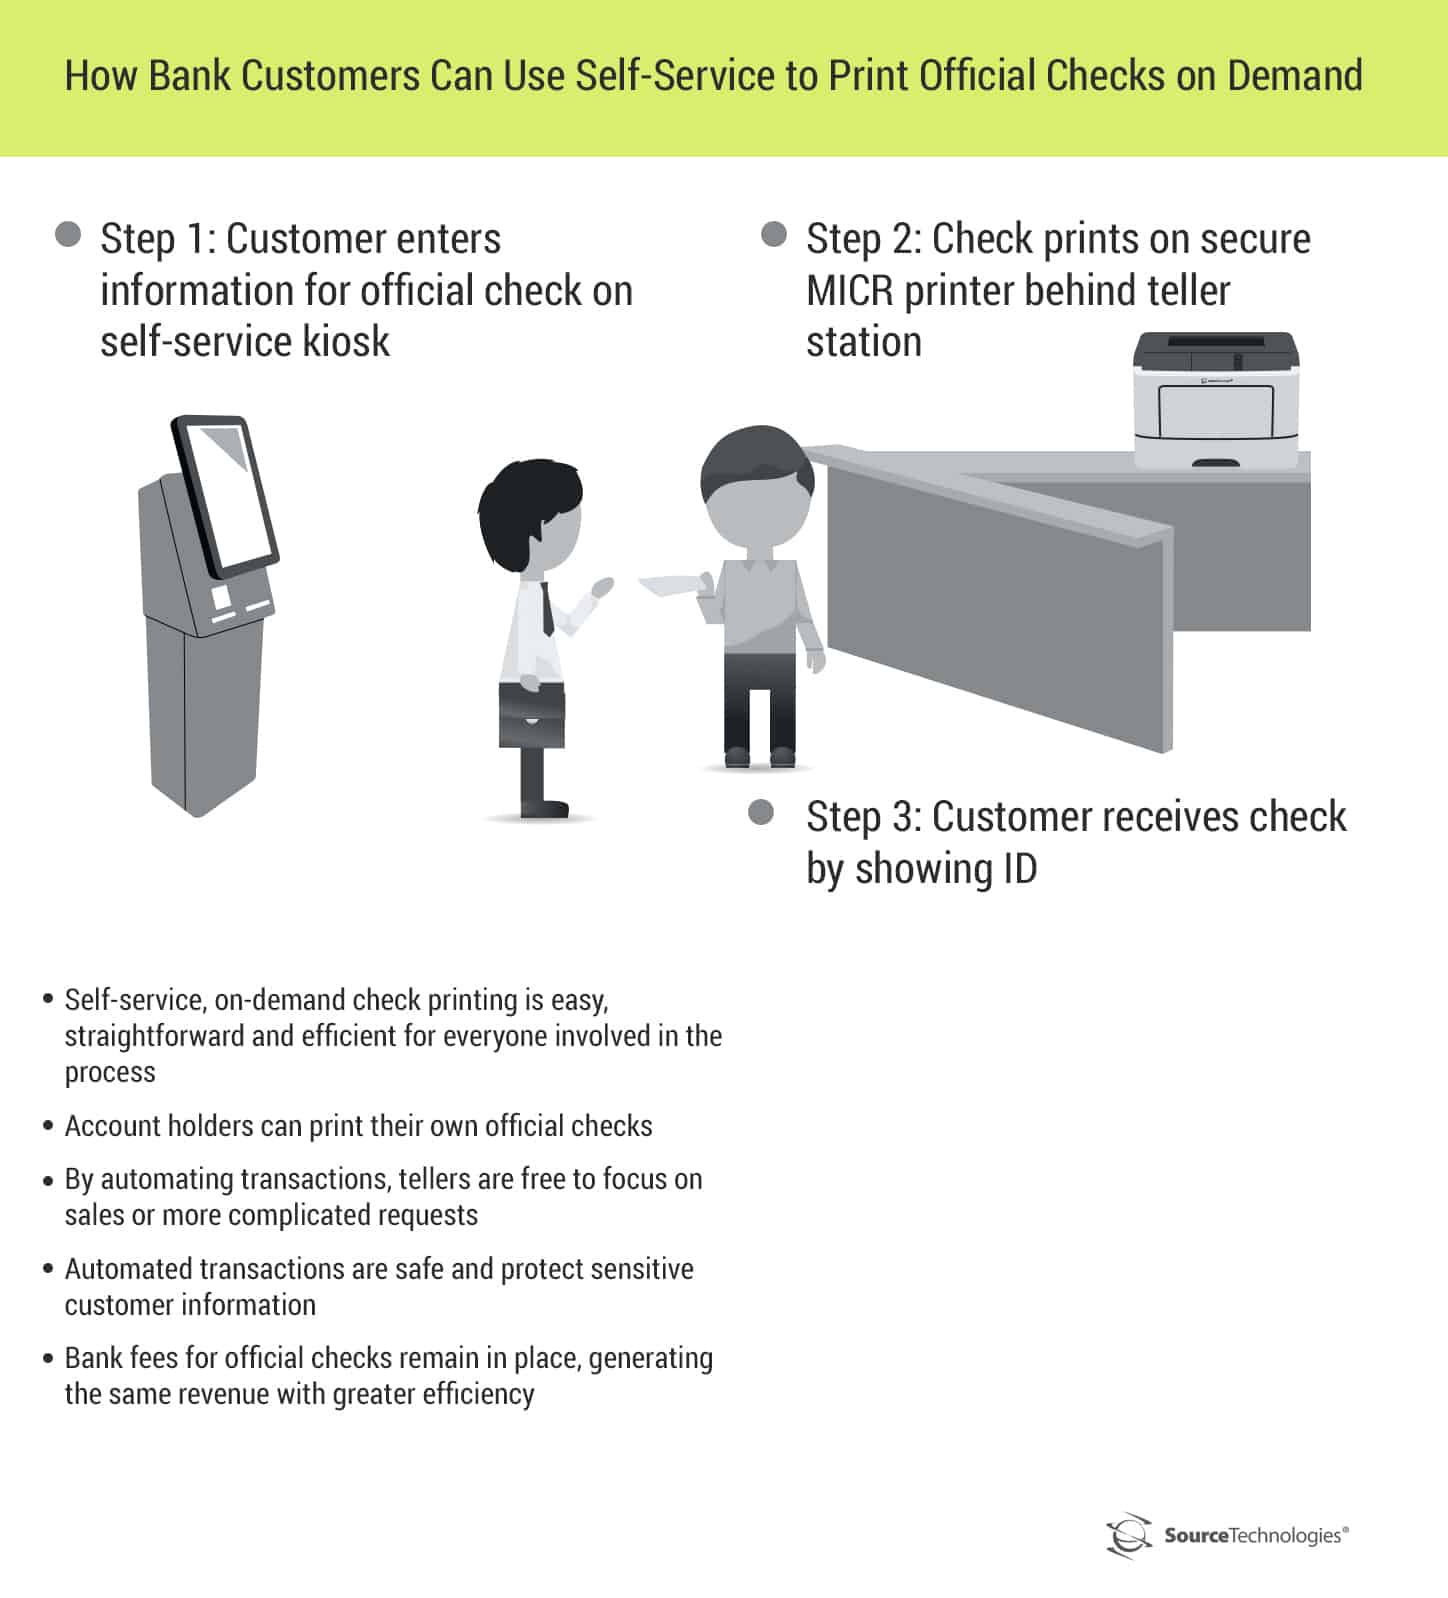 print-checks-on-demand